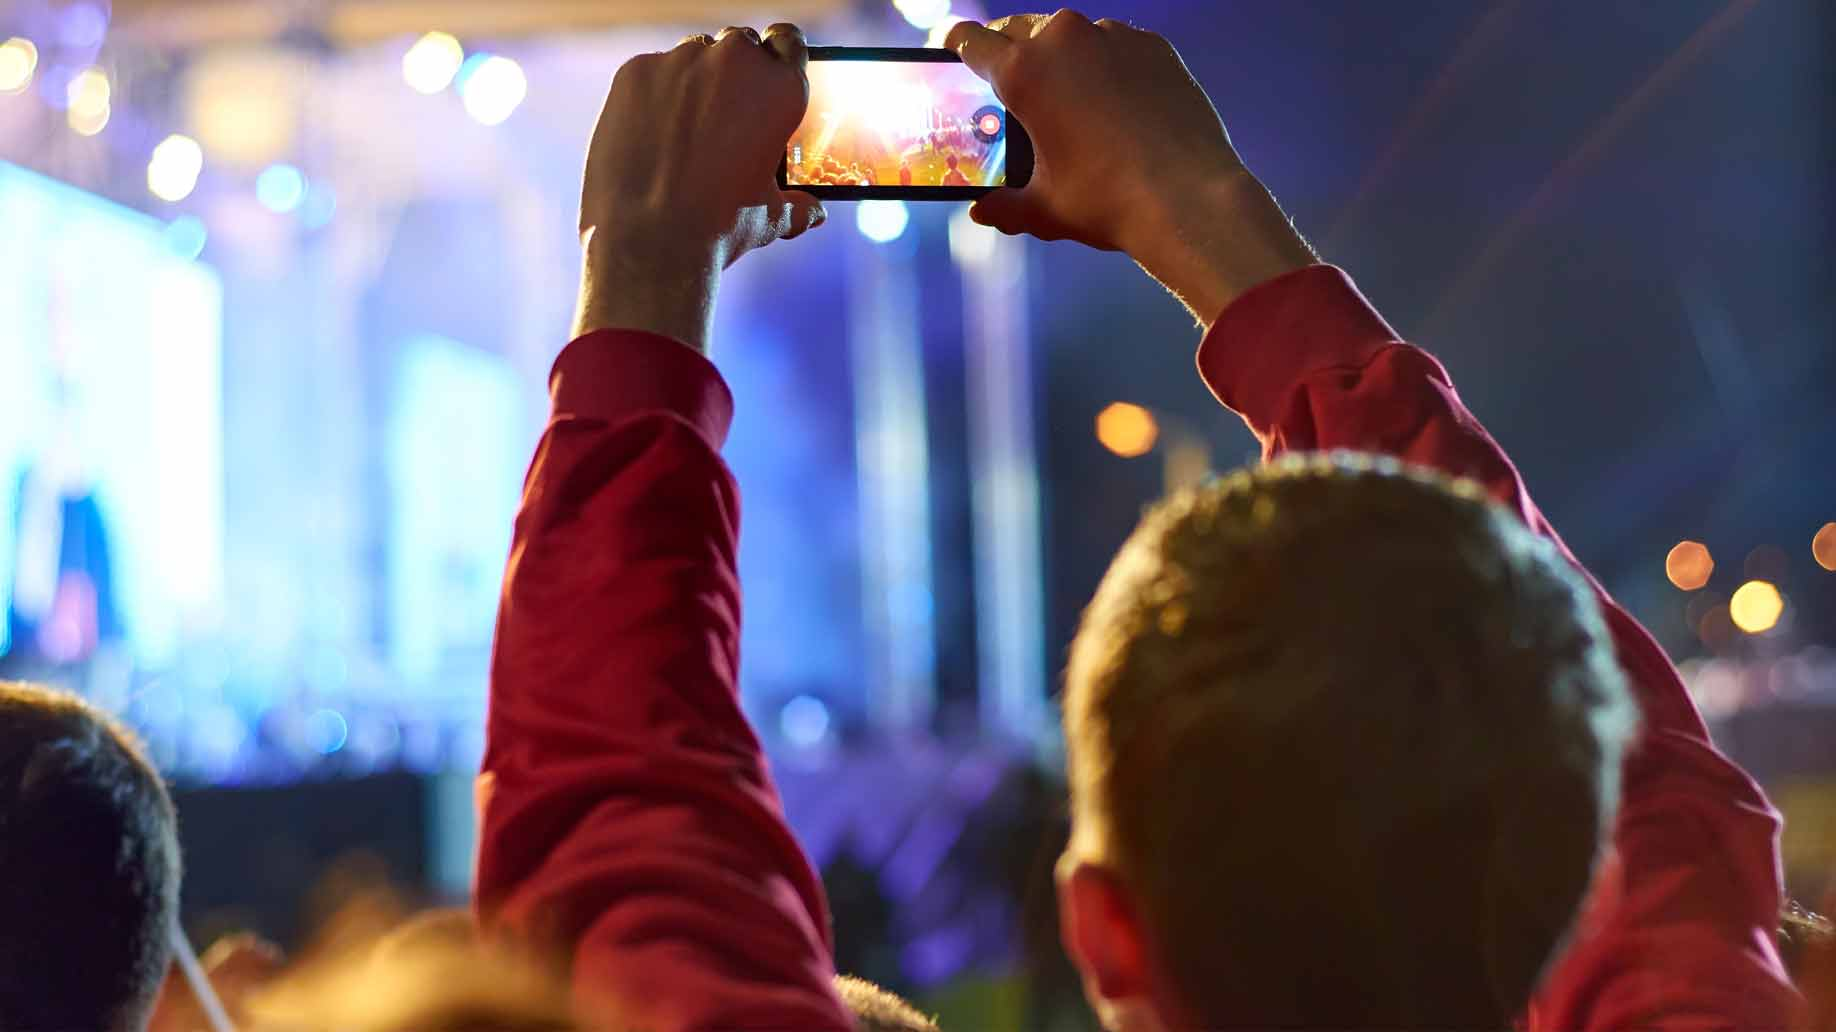 recording video at a concert with a smart phone